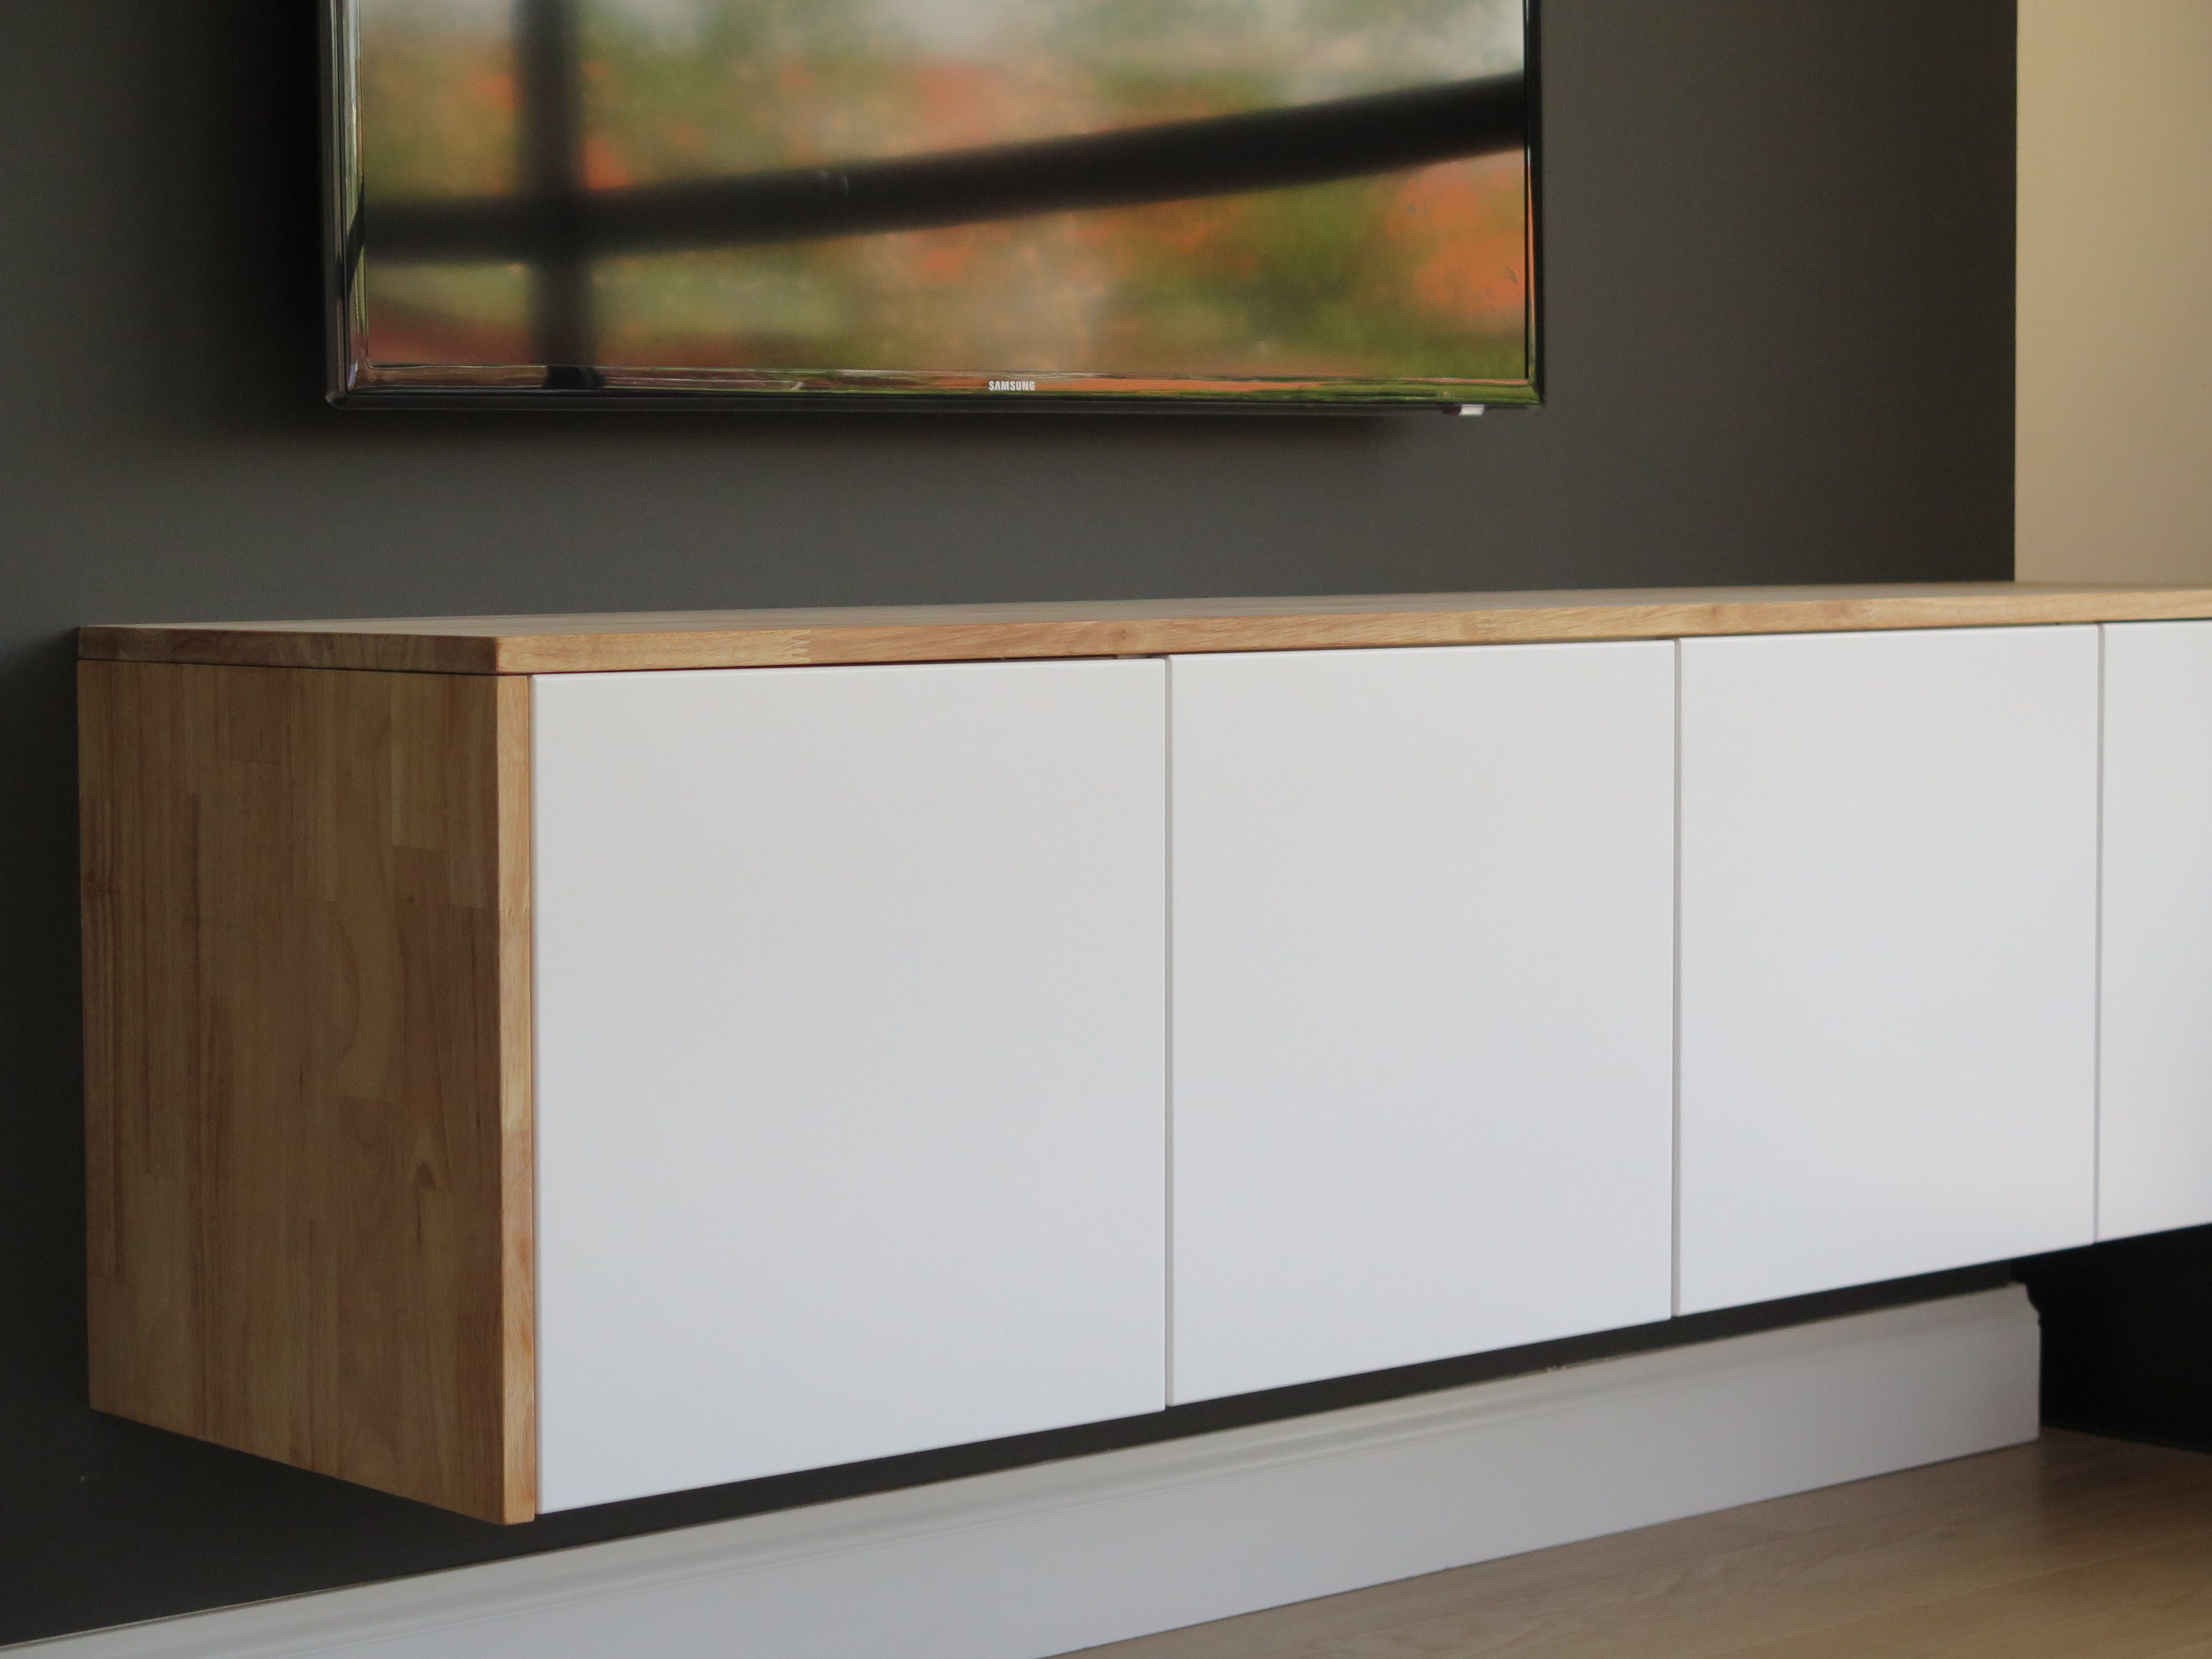 Rubberwood Fauxdenza Cabinets Veddinge Sidings Fronts Store Local Metod Ikea From Made Ikea With Usedmade A Fauxden Haus Wohnzimmer Ikea Wohnung